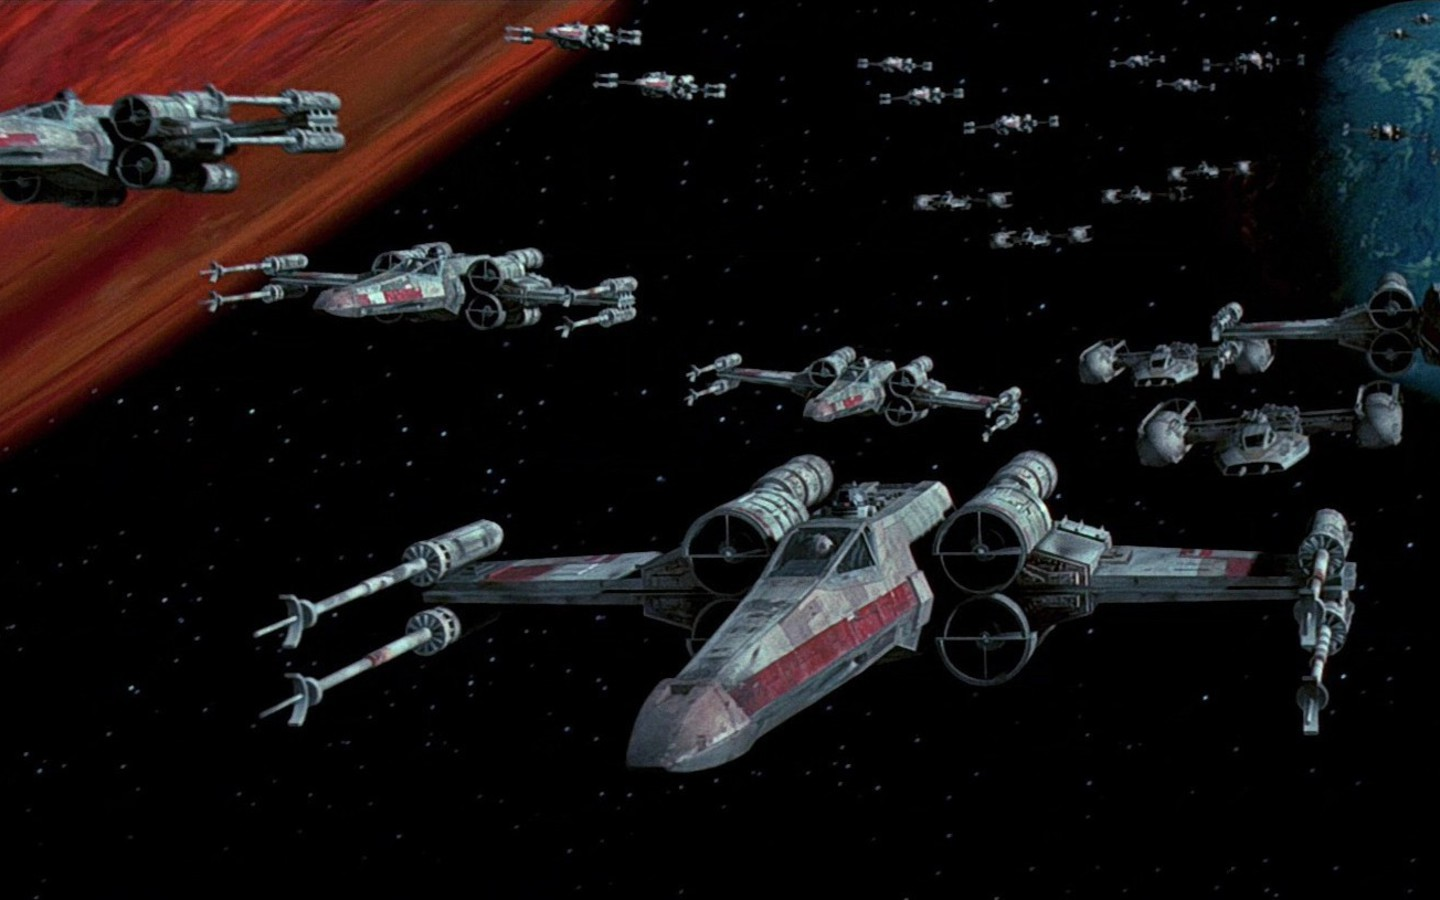 star wars outer space movies x-wing y-wing wallpaper | allwallpaper